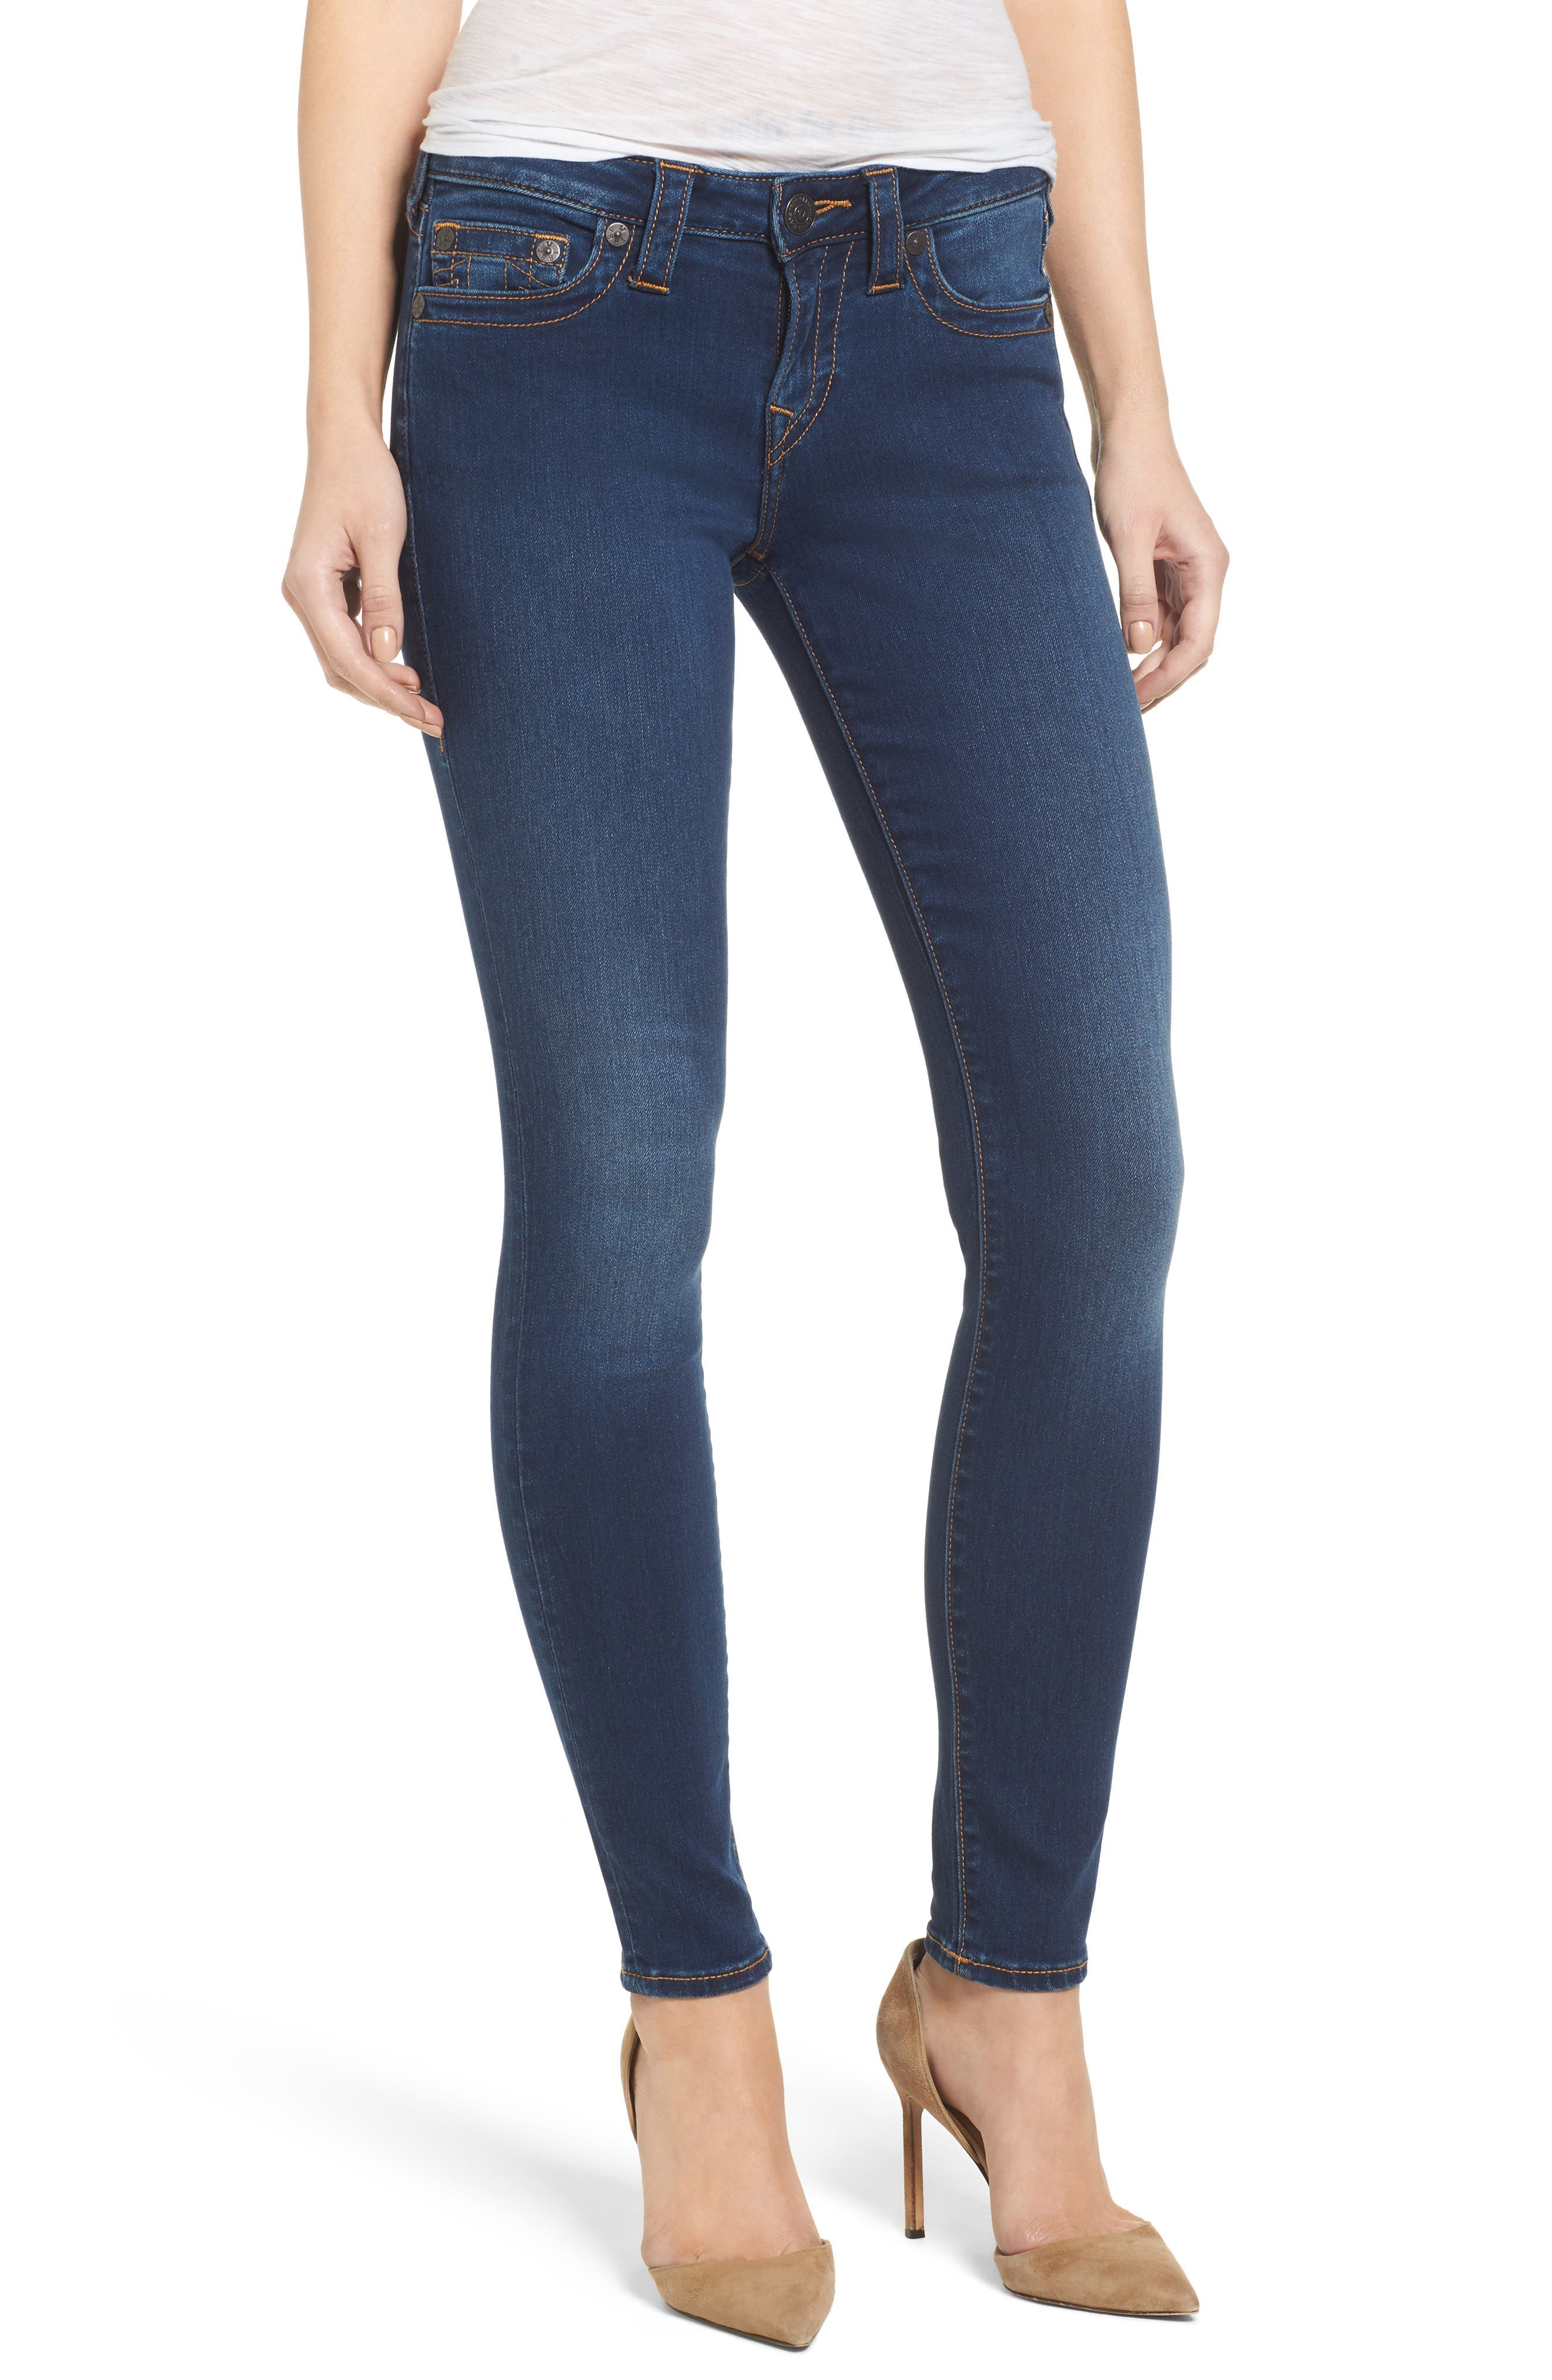 Halle Mid Rise Skinny Jeans,                             Main thumbnail 1, color,                             Lands End Indigo